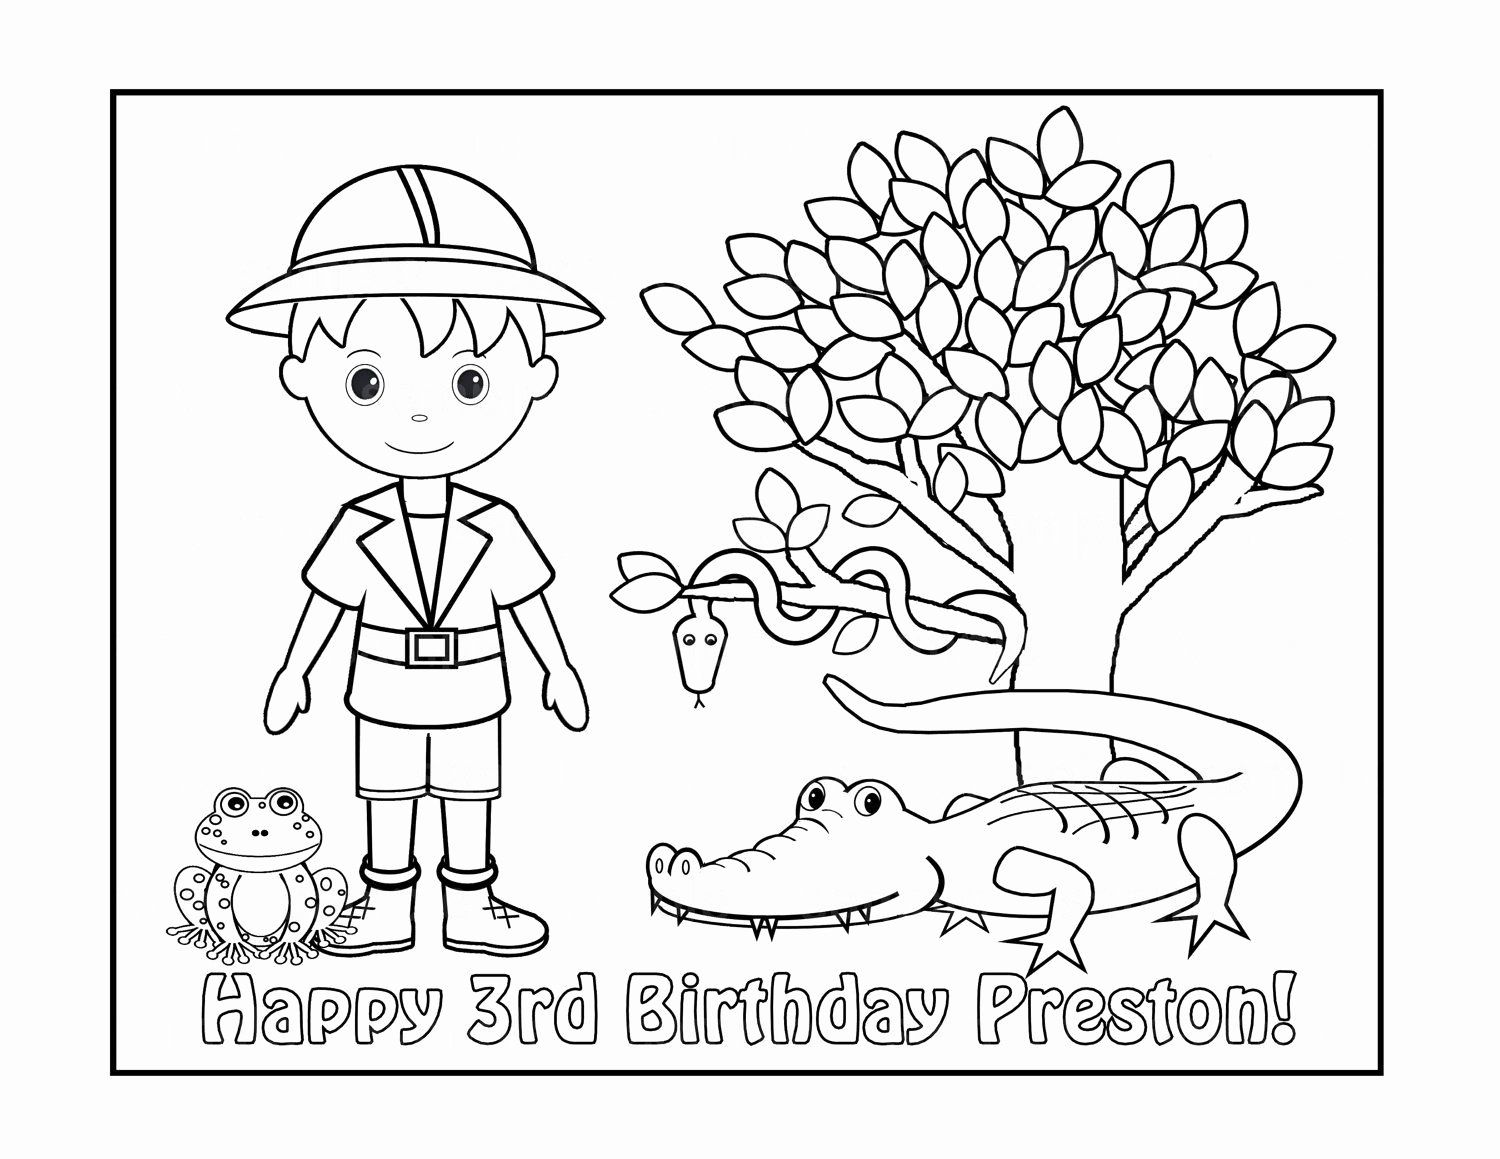 Jungle Printable Coloring Pages Best Of Free Jungle Printables Coloring Pages Animal Coloring Pages Jungle Coloring Pages Coloring Pages